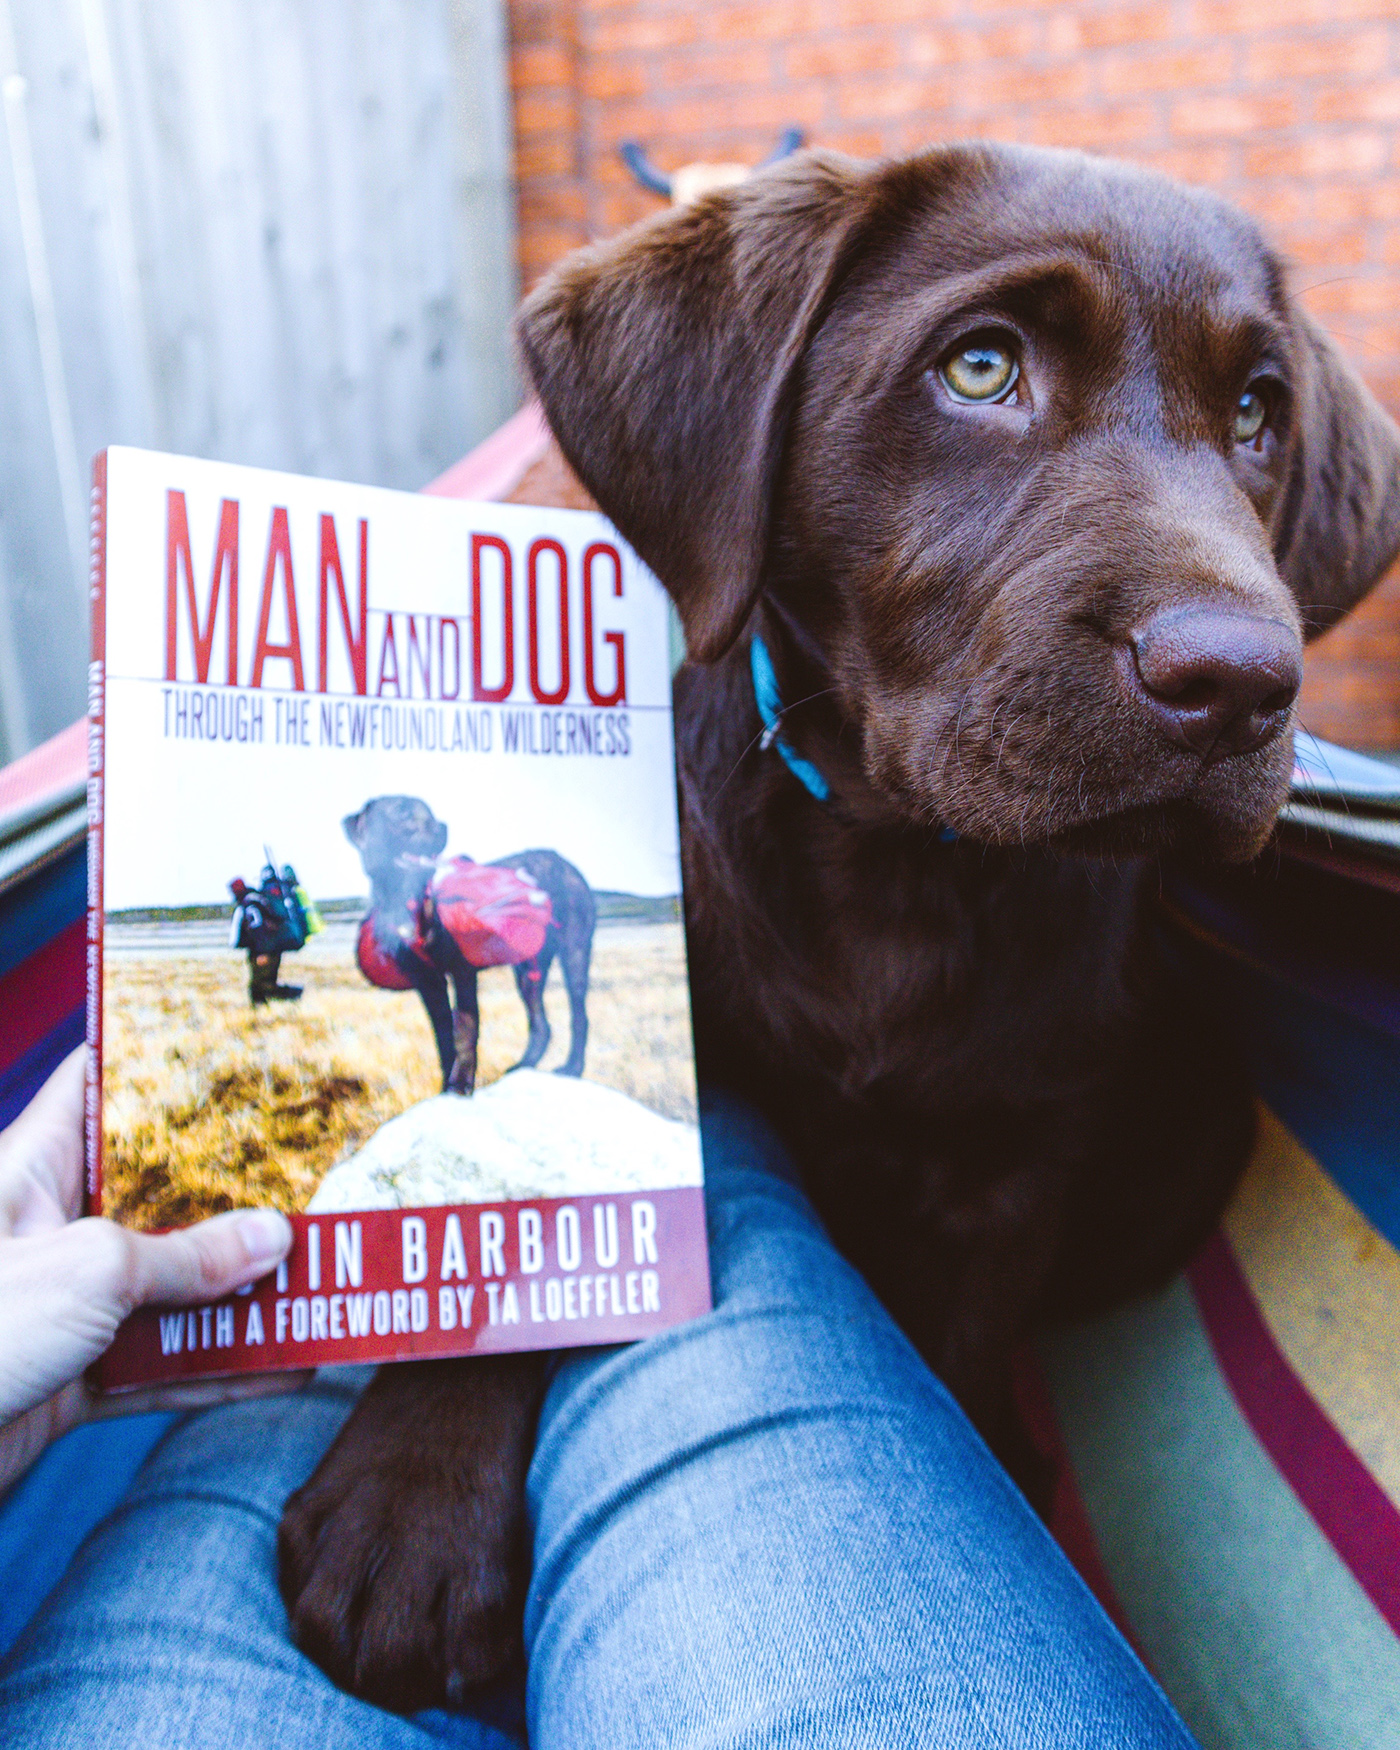 Woman and dog read Justin Barbour's Man and Dog: Through the Newfoundland Wilderness